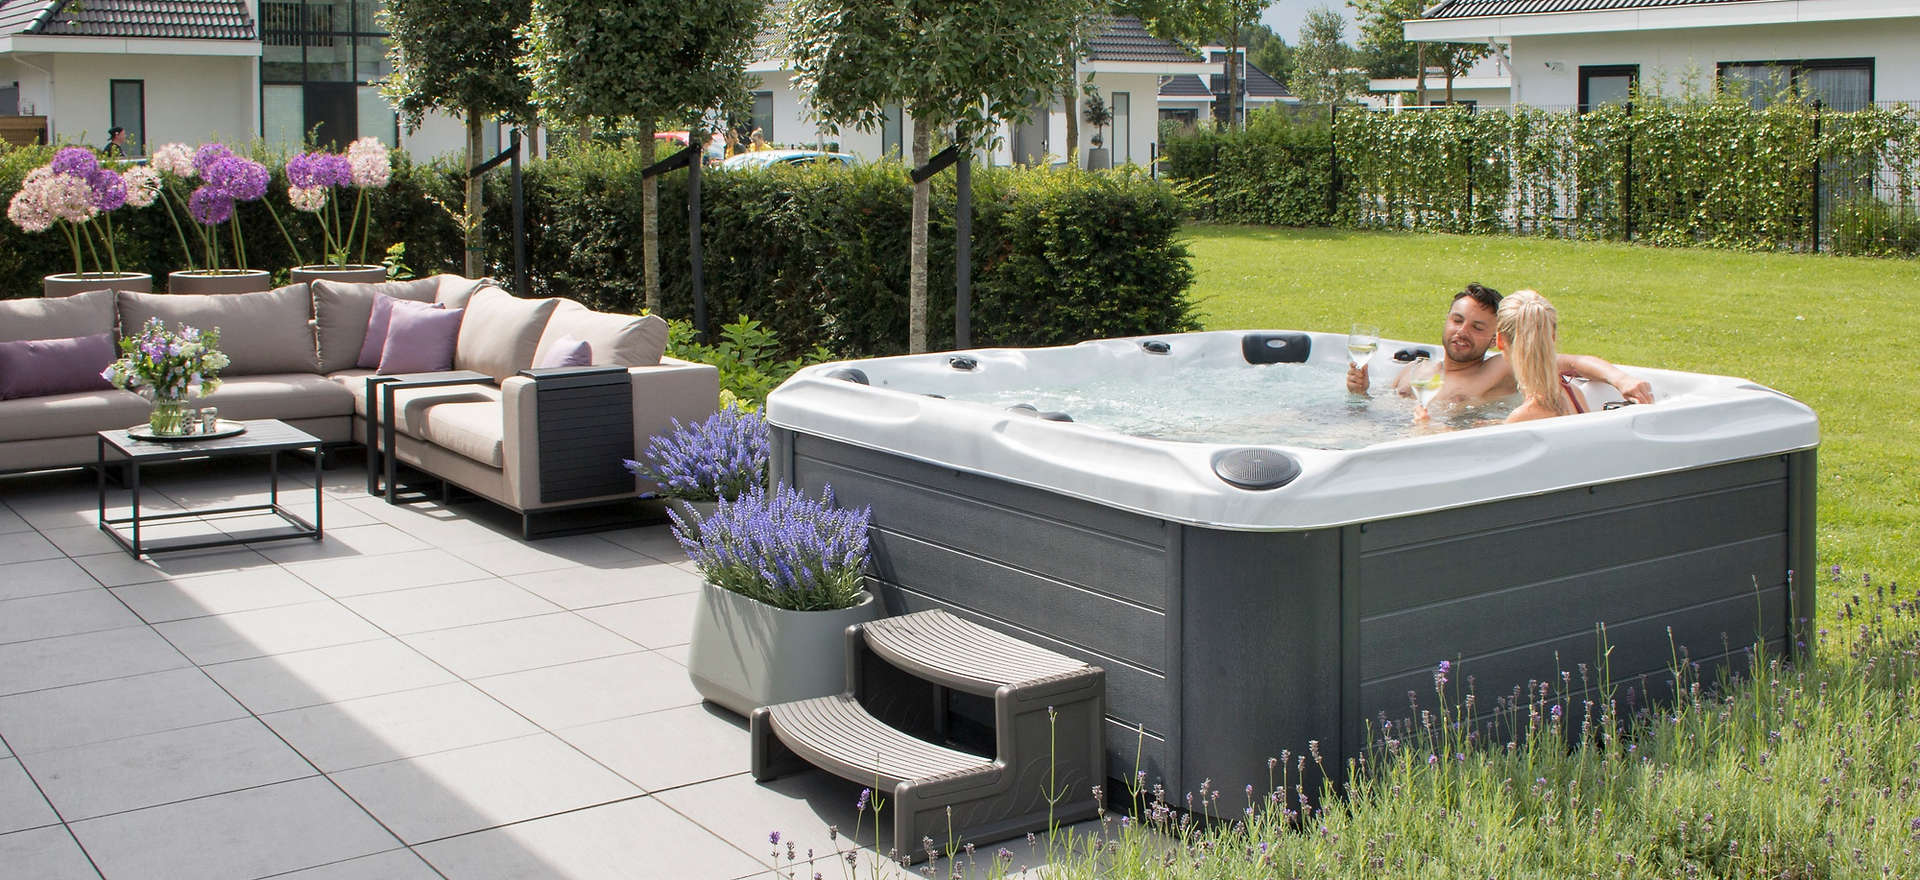 Whirlpool Passion Spas Delight